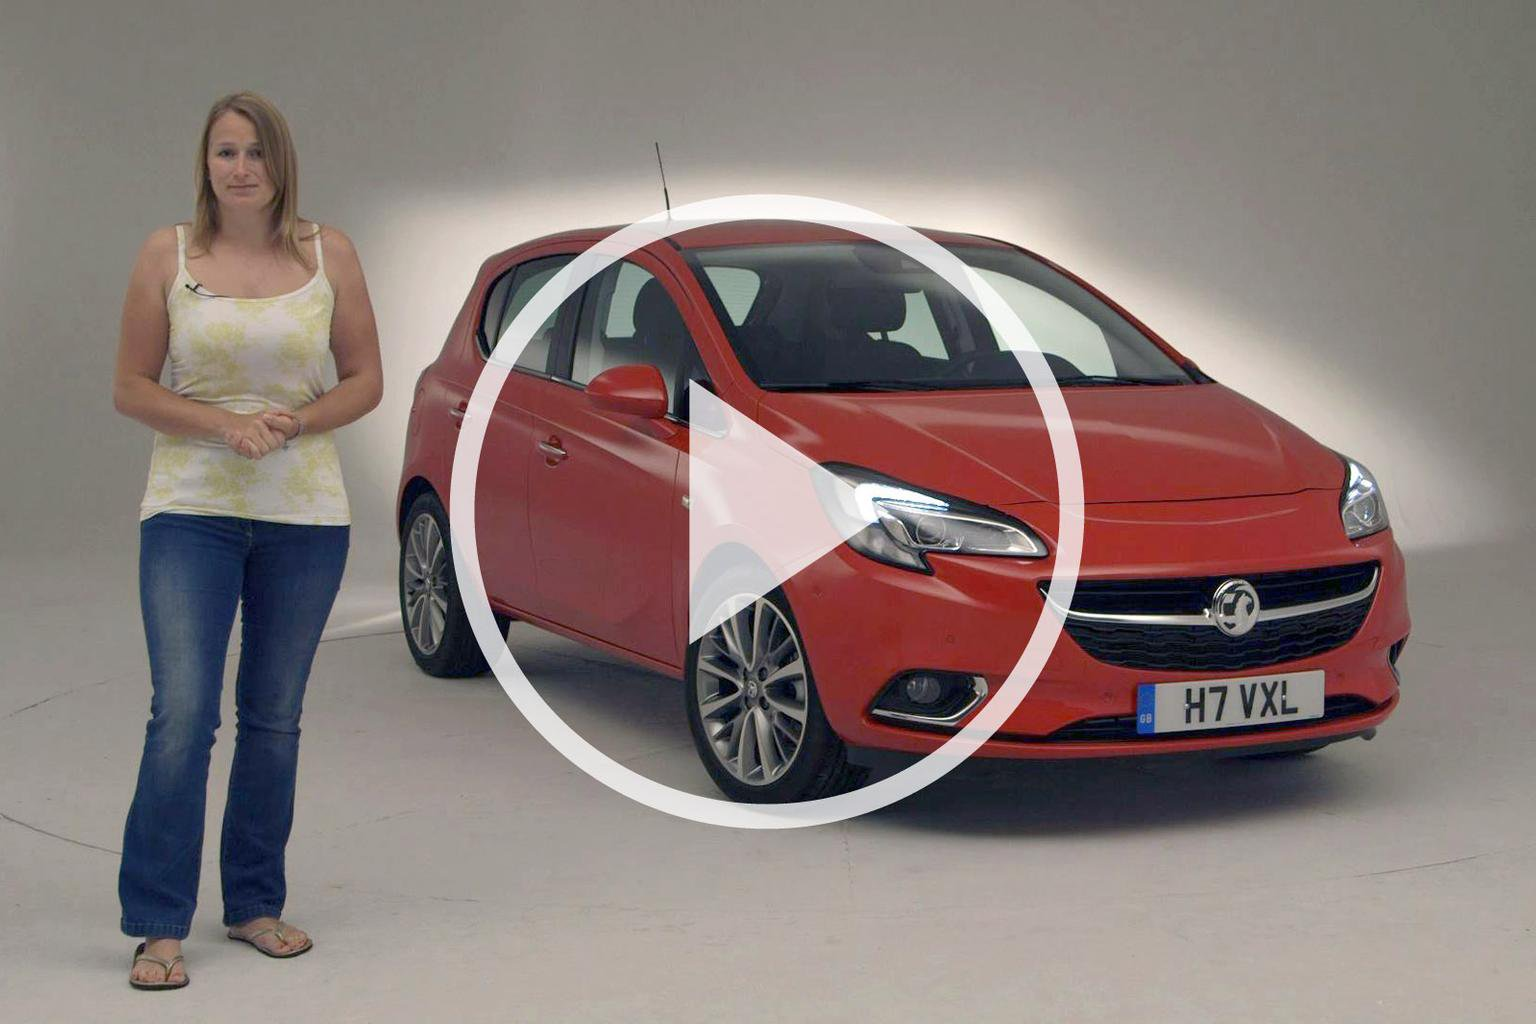 Video: five key things about the new Vauxhall Corsa